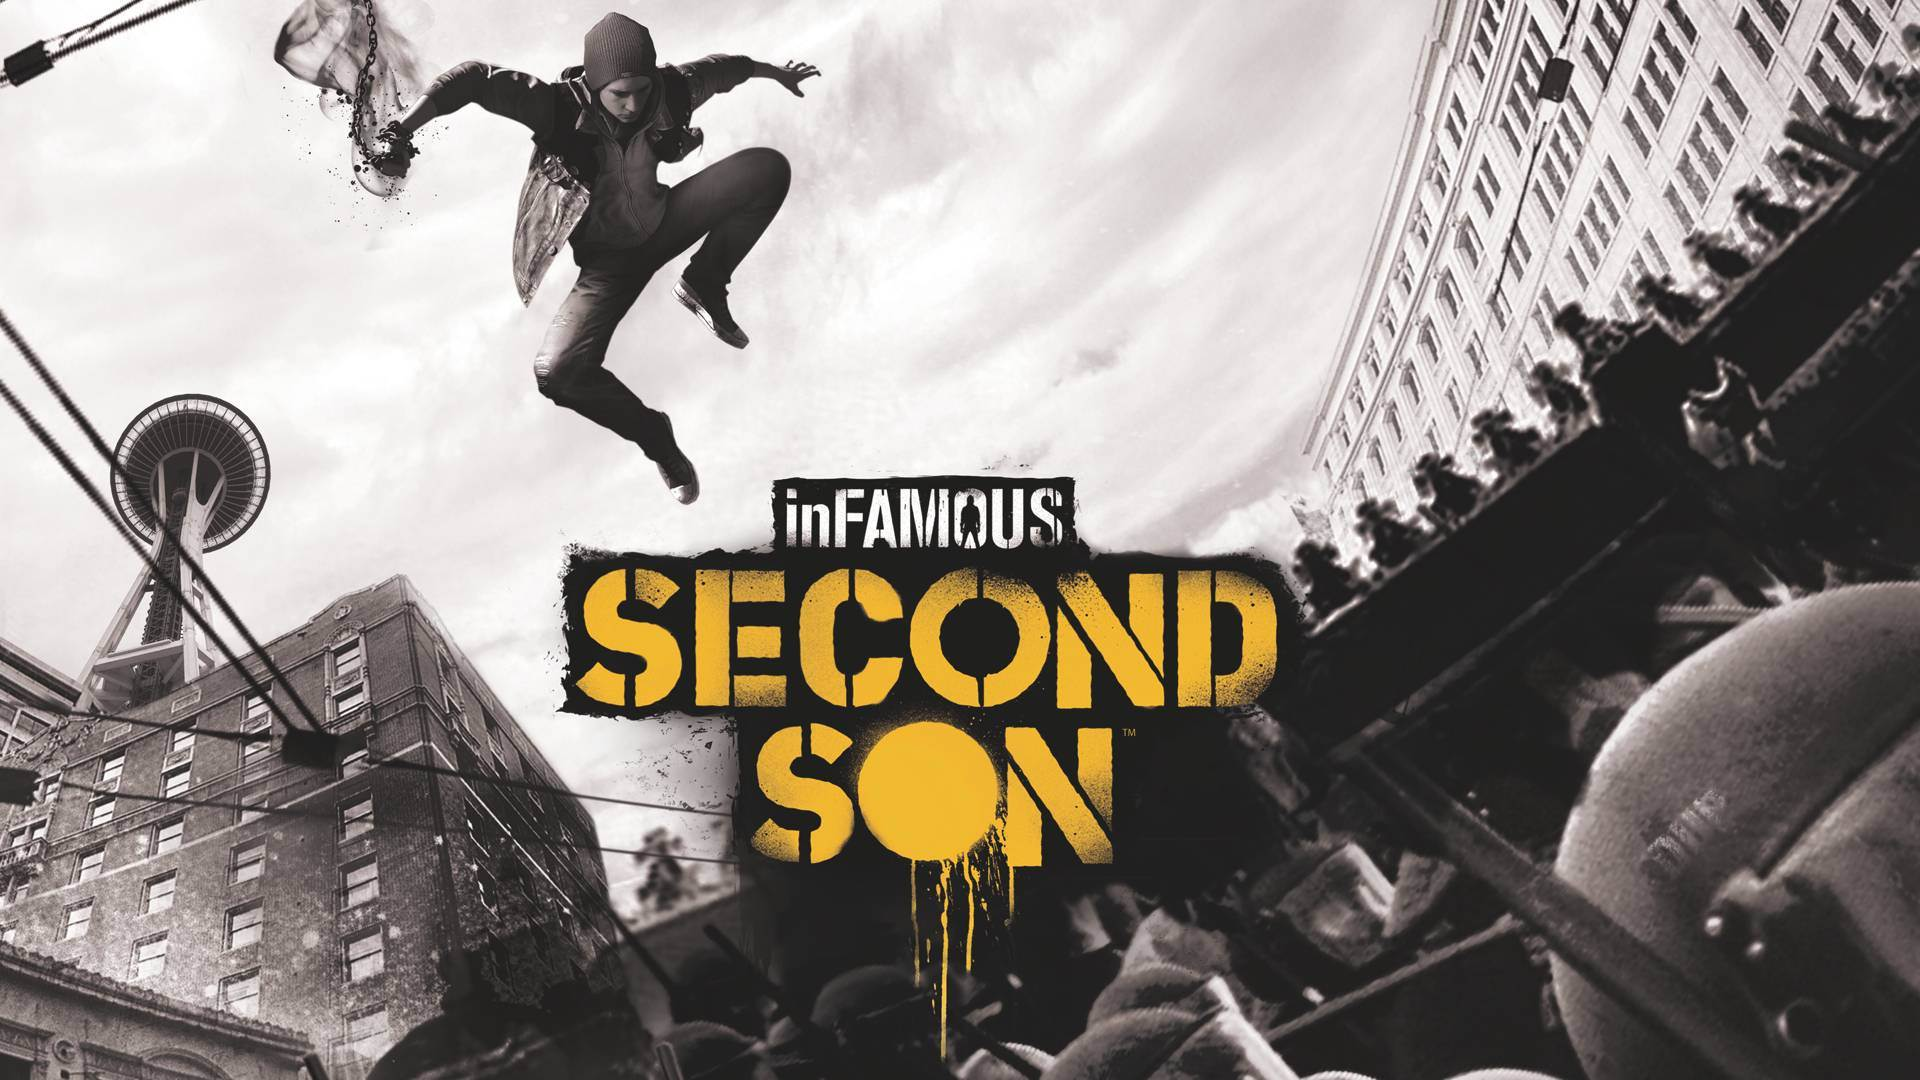 InFamous: Second Son is a hot topic in gaming right now, as it is the first triple-A PlayStation 4 exclusive since launch. Many people are just getting into ...